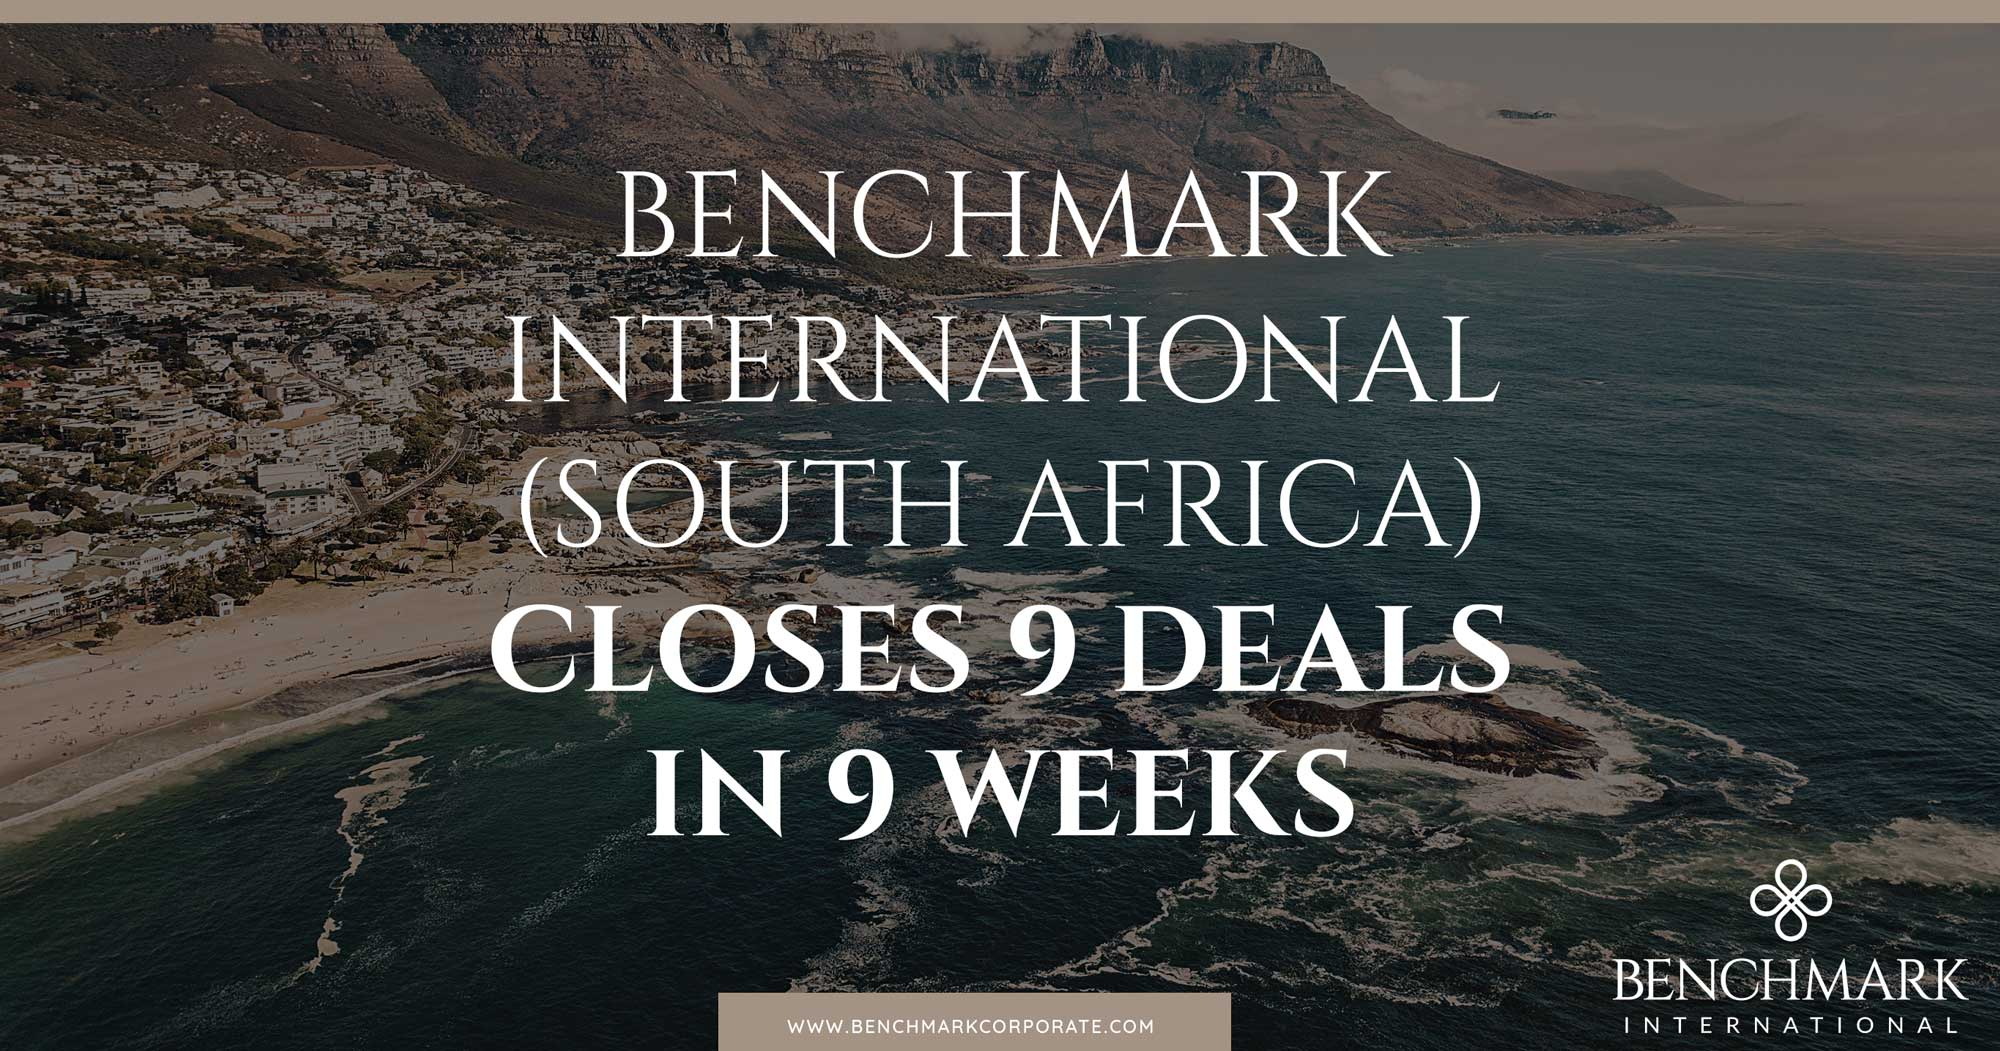 Benchmark International (South Africa) Closes 9 Deals in 9 Weeks